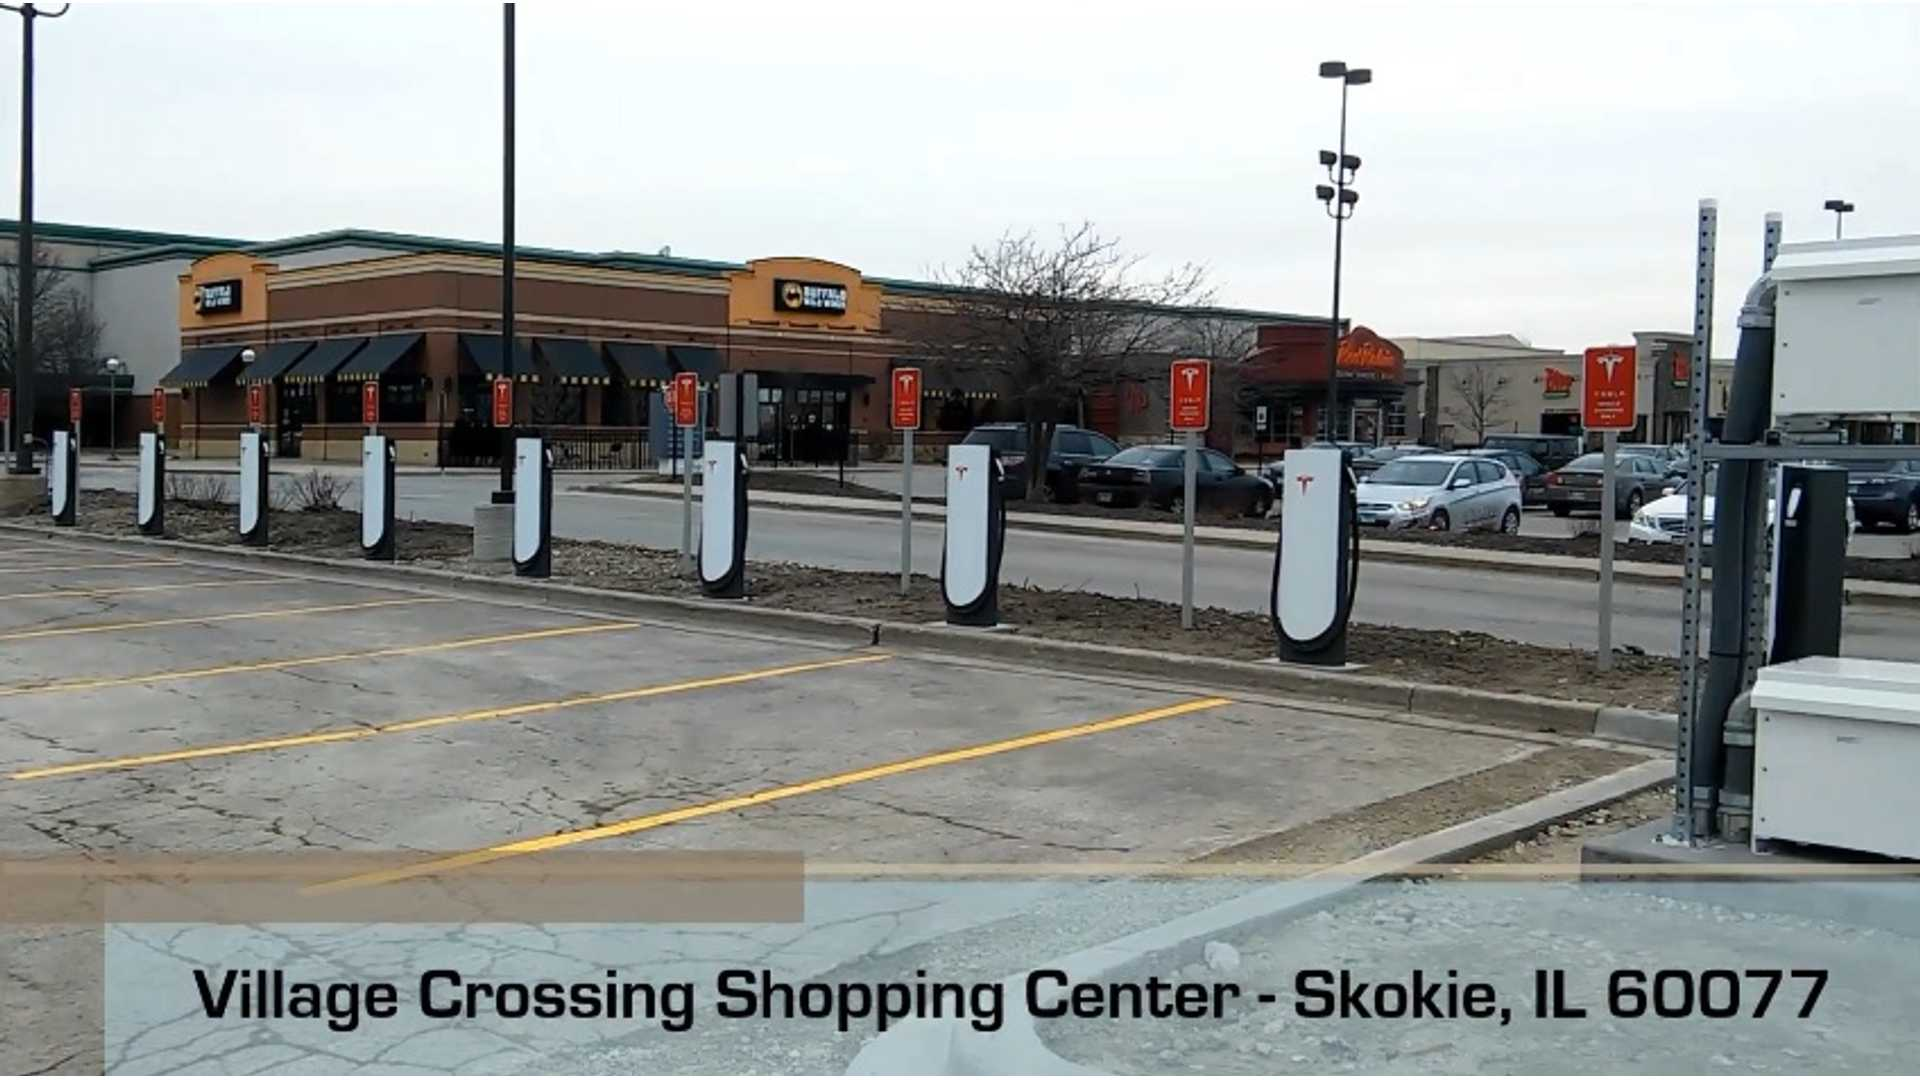 20 Tesla Urban Superchargers Installed In Skokie, IL (Up To